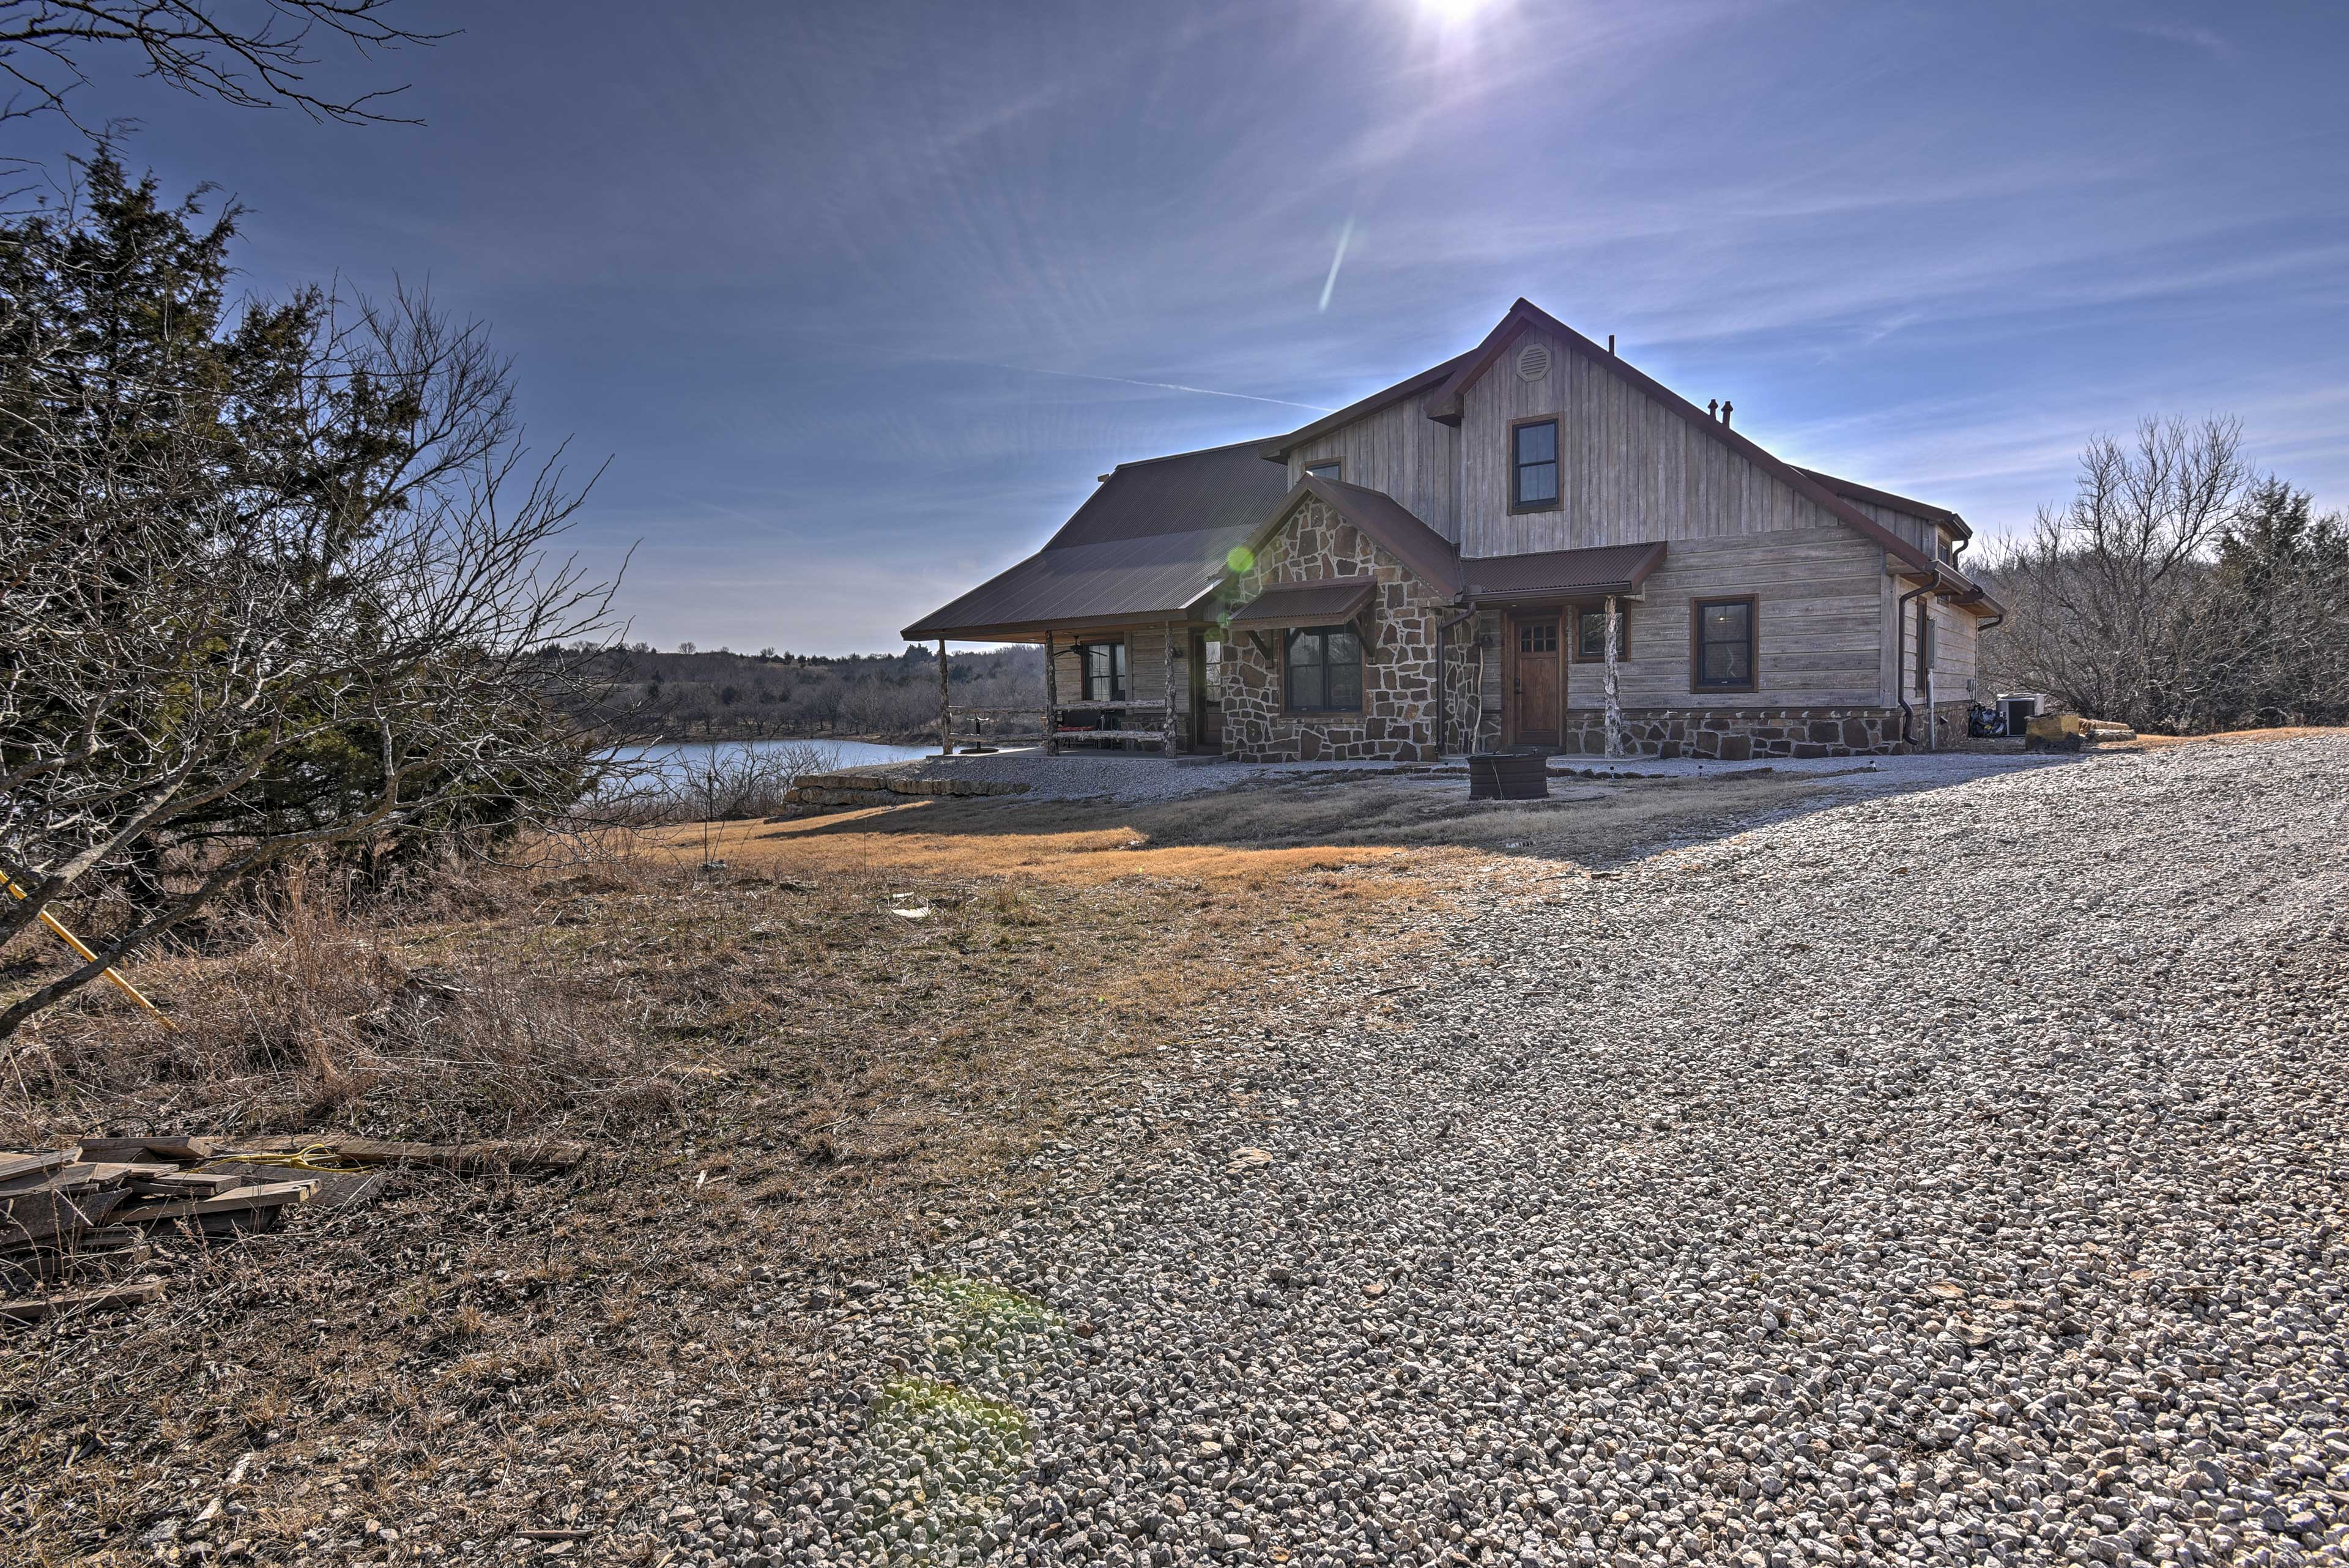 Your crew of up to 10 will love every minute at this remote cabin!